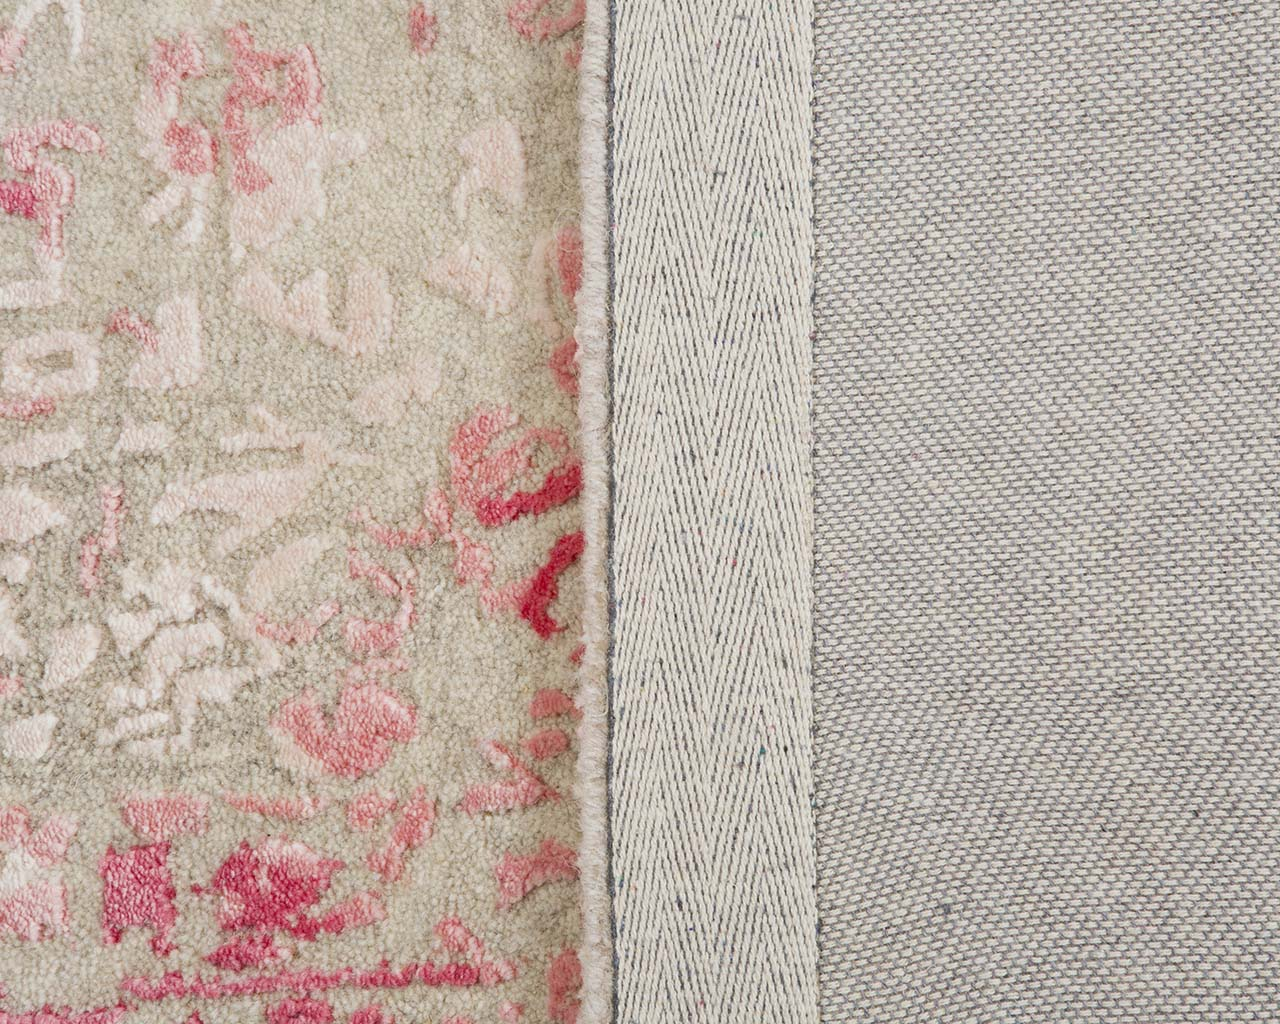 crimson tufted and fresh discount area rugs